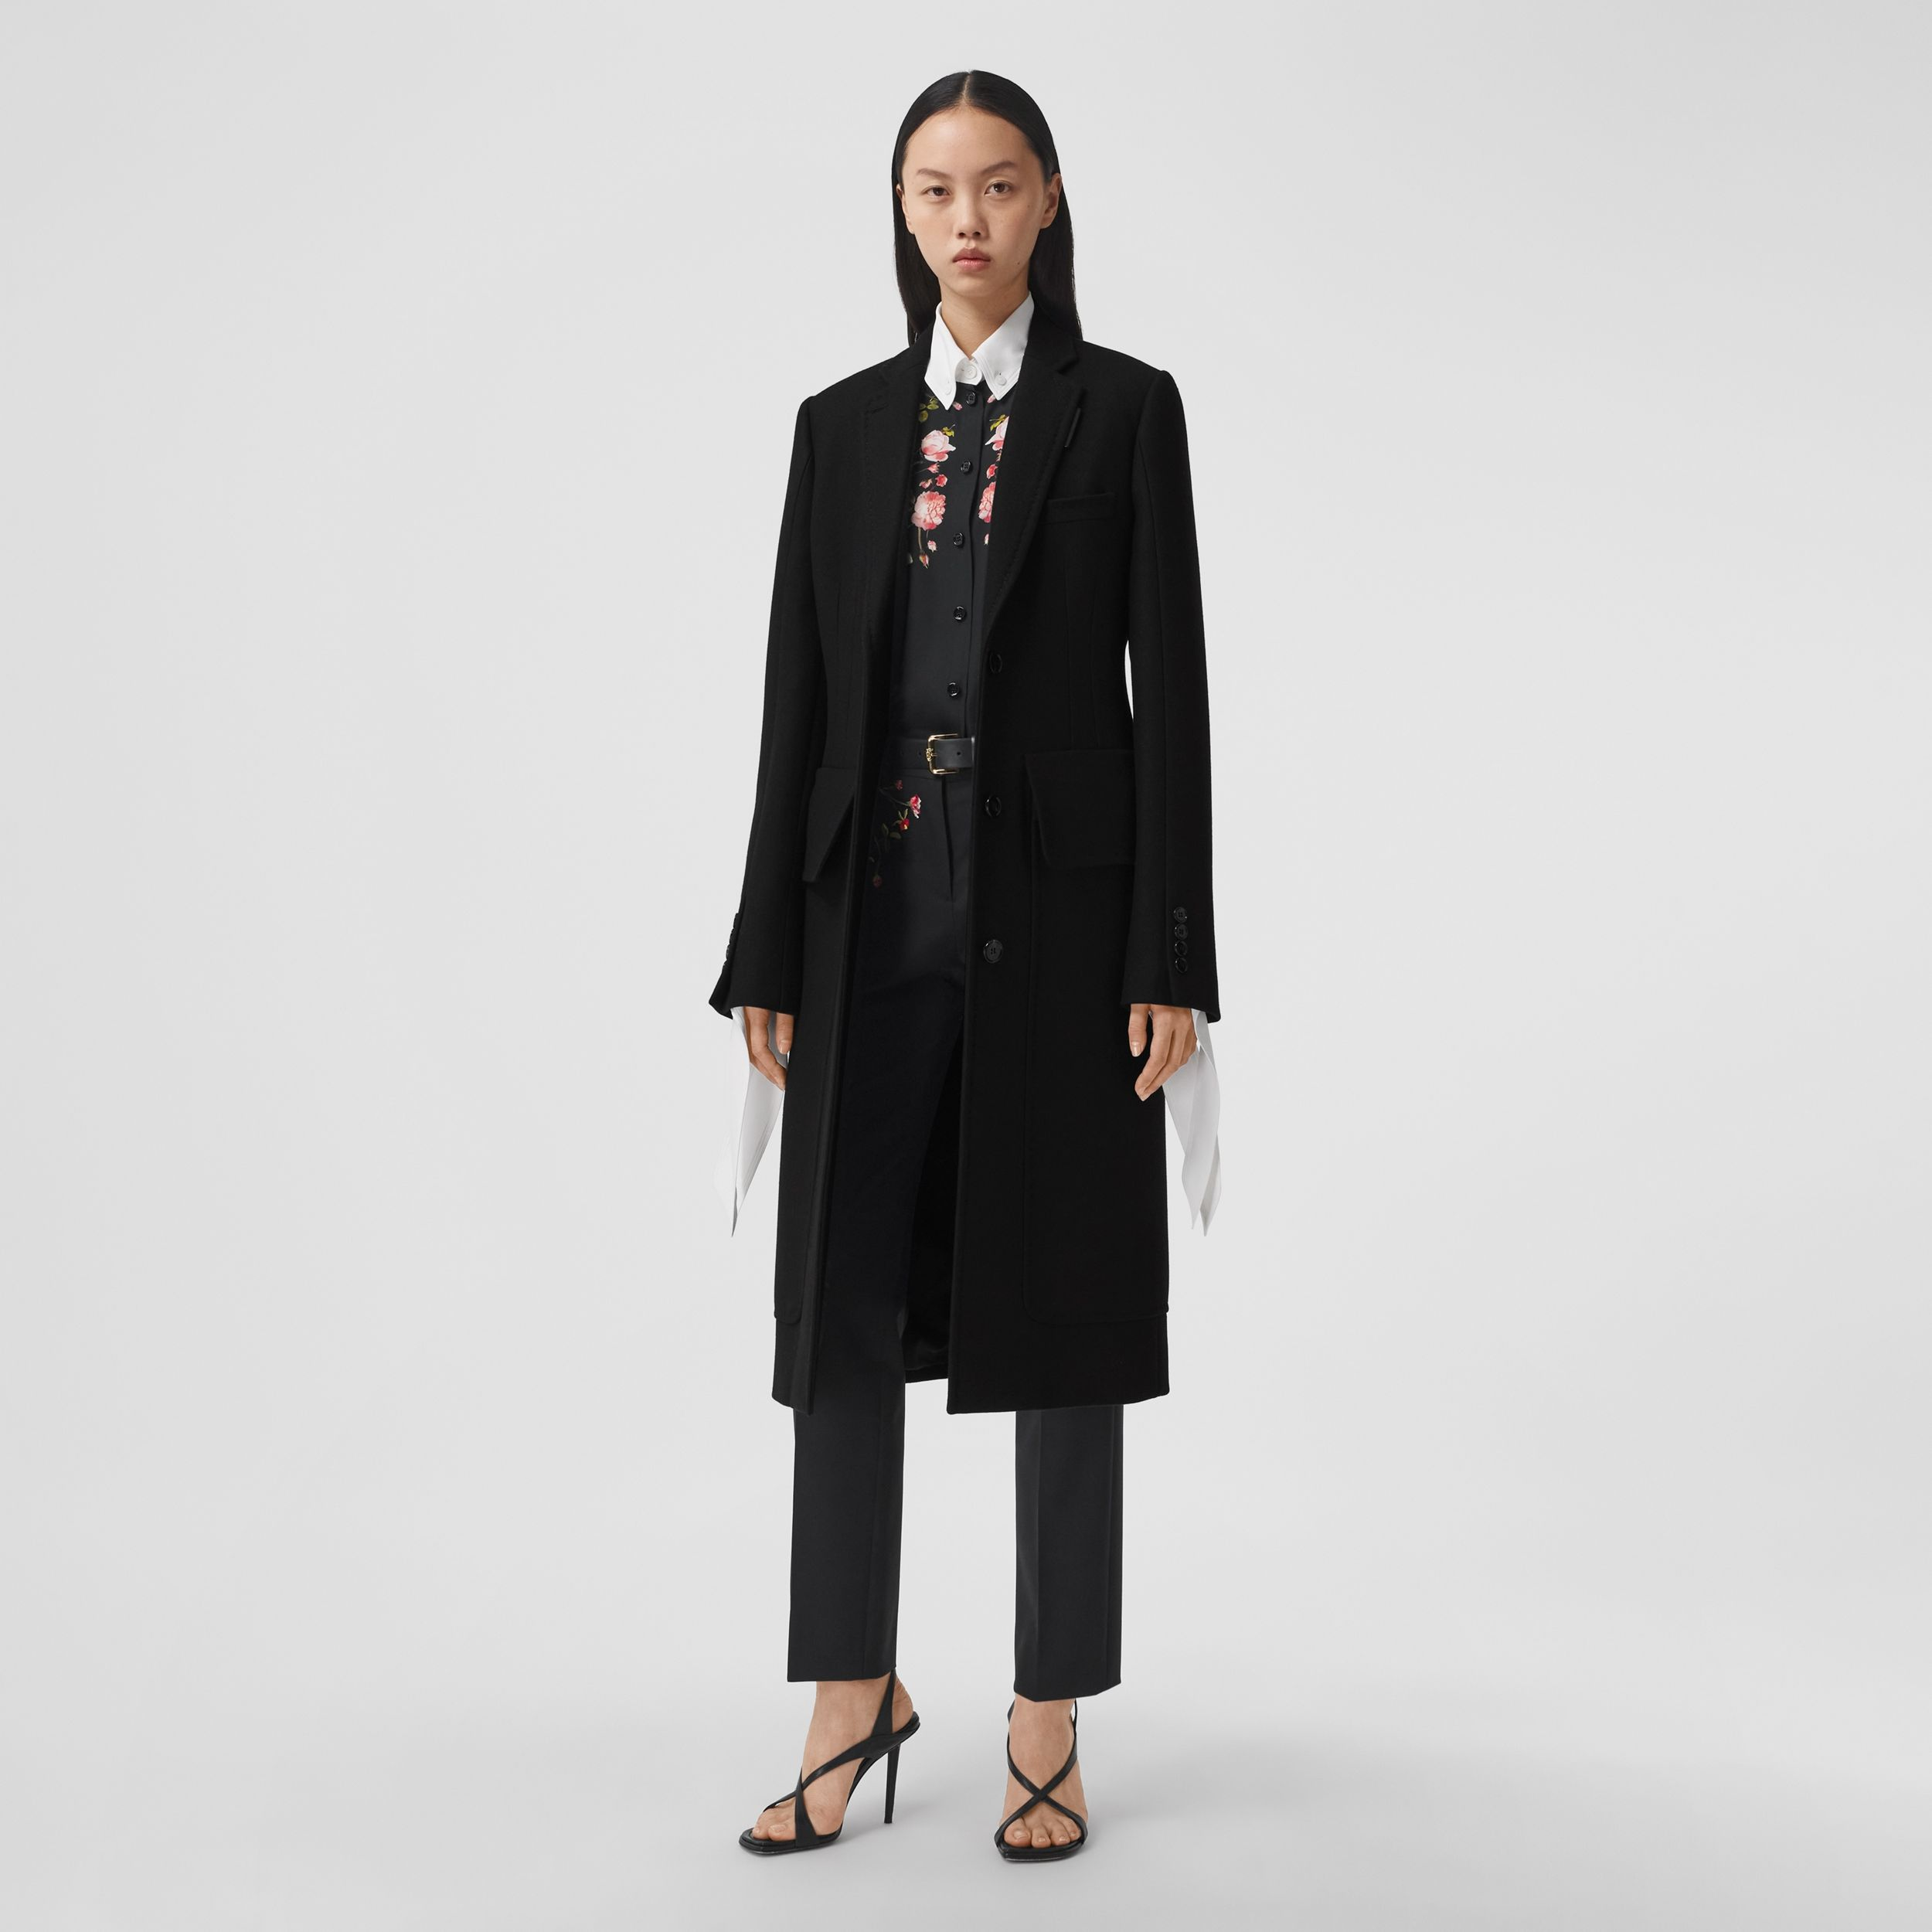 Camel Hair Wool Tailored Coat in Black - Women | Burberry - 1